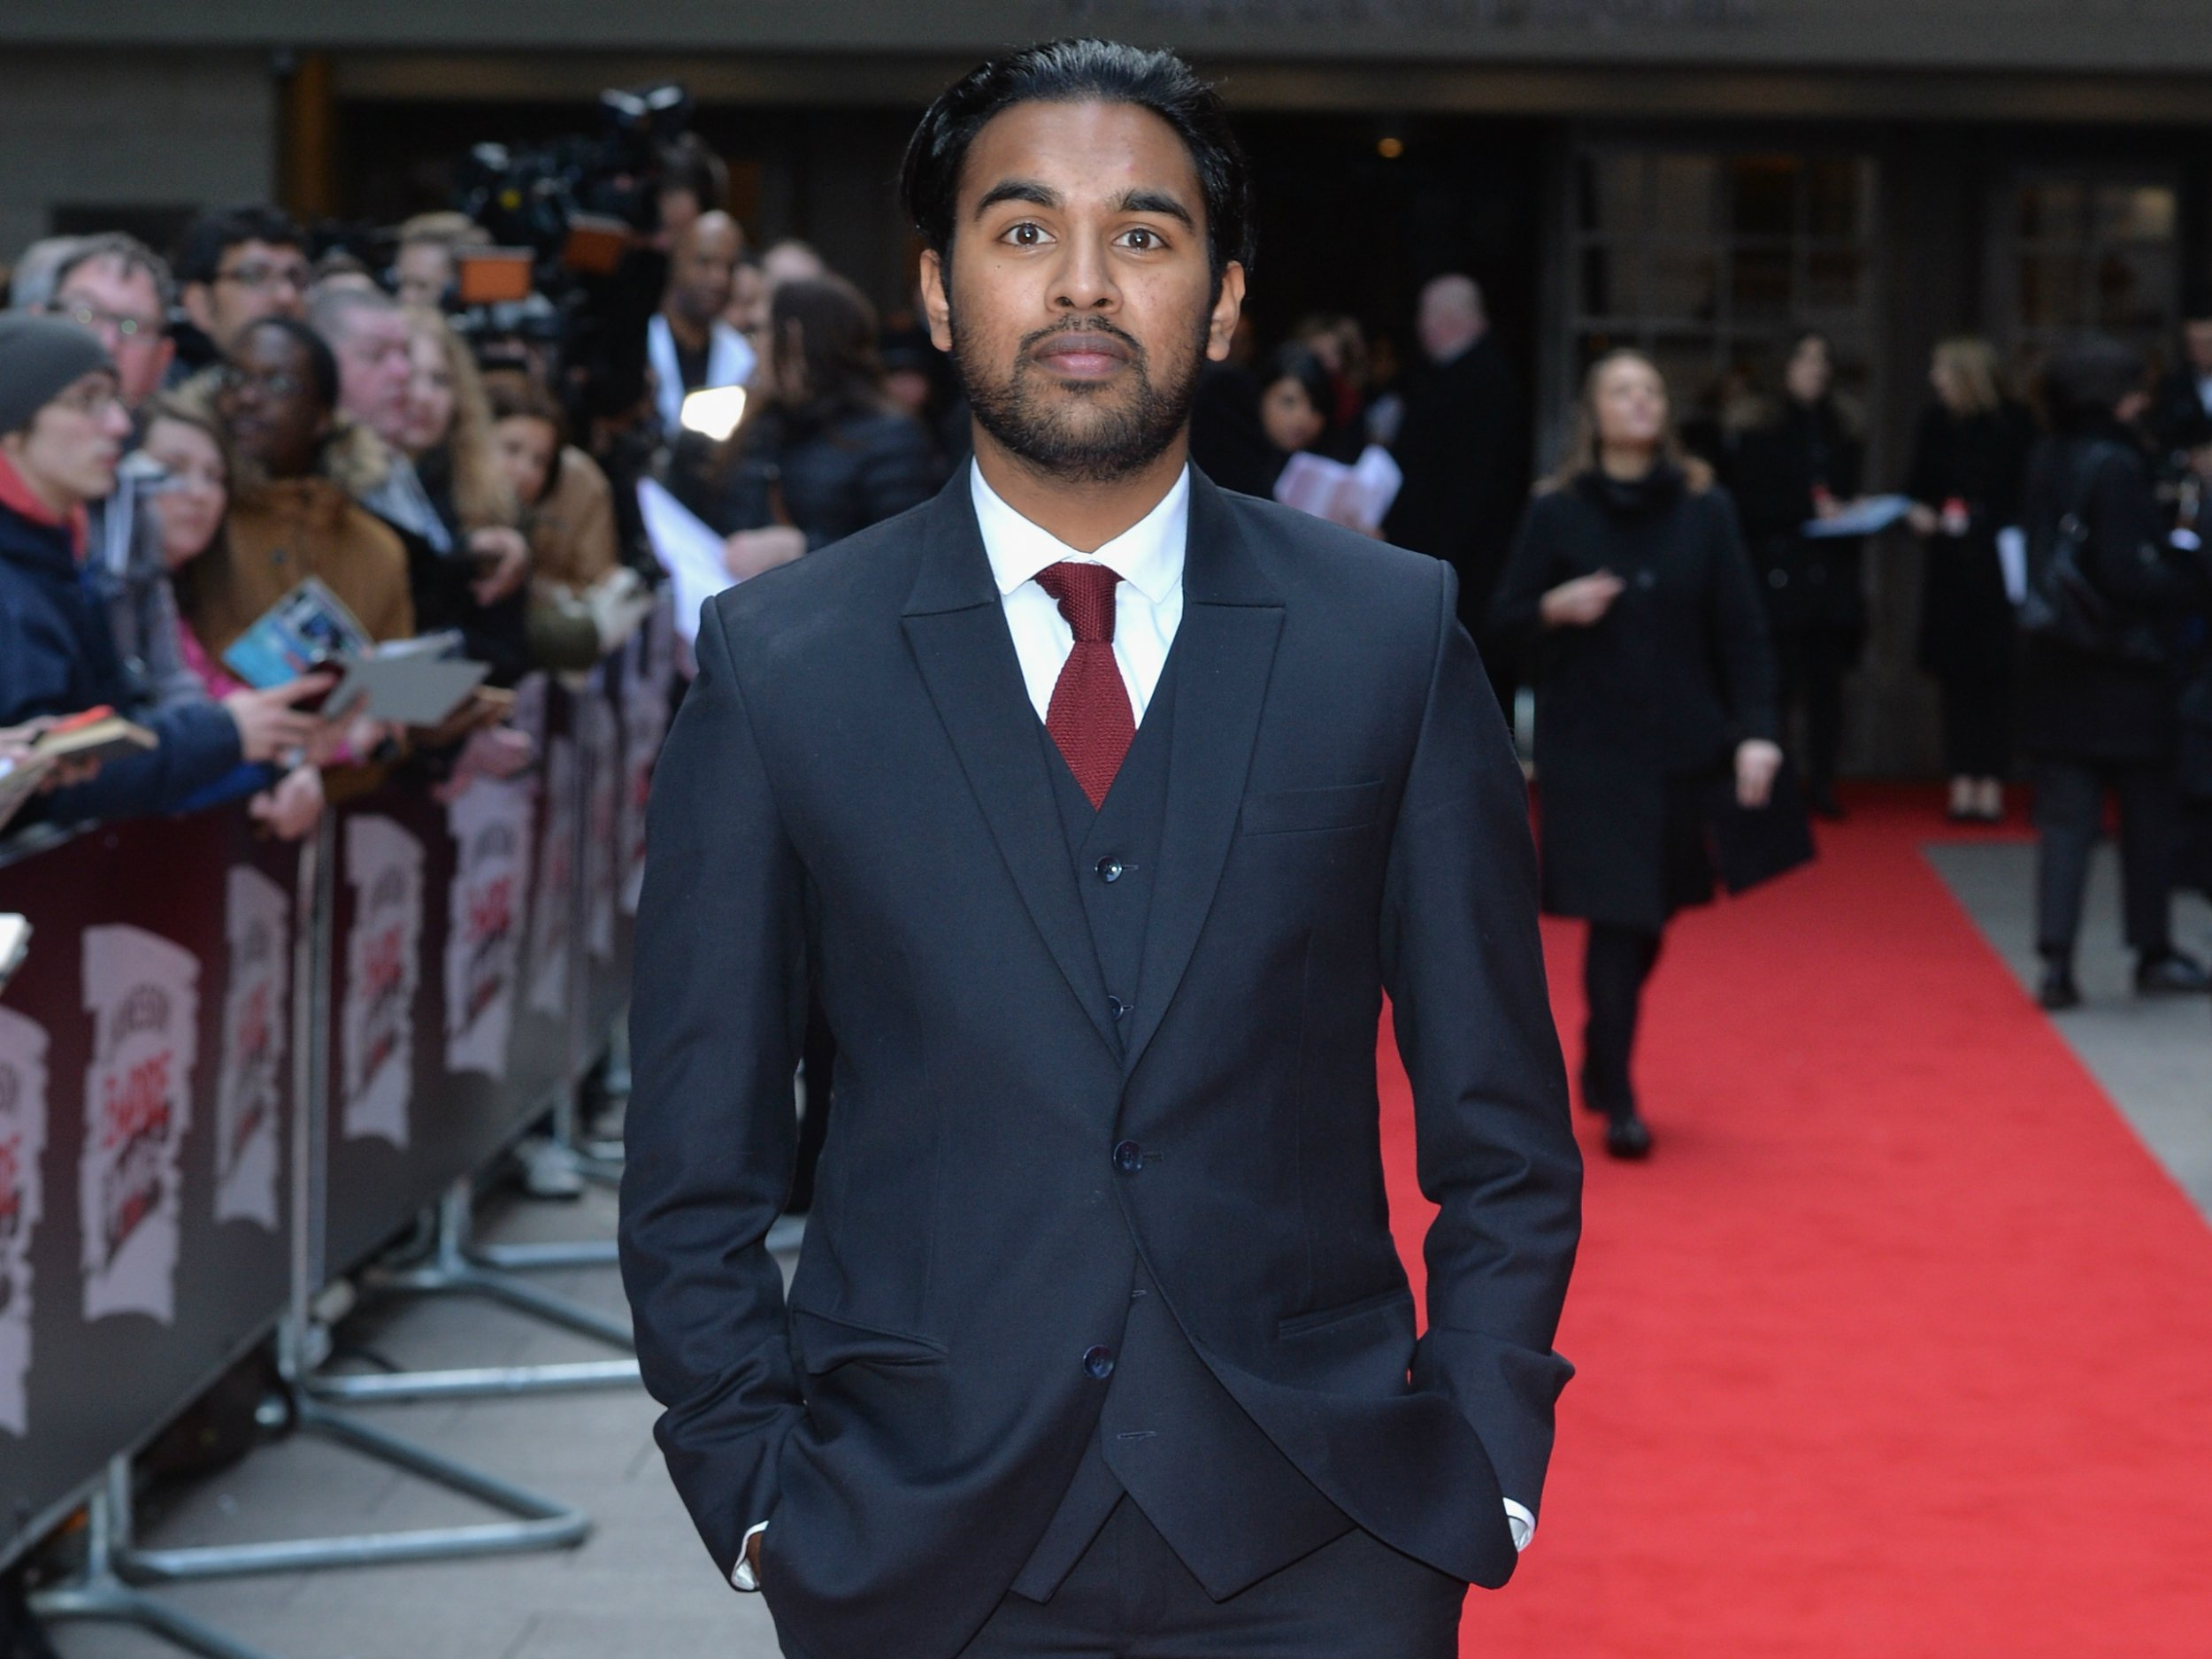 The Good Immigrant Eastenders Himesh Patel On How Multiculturalism Is Represented On Television